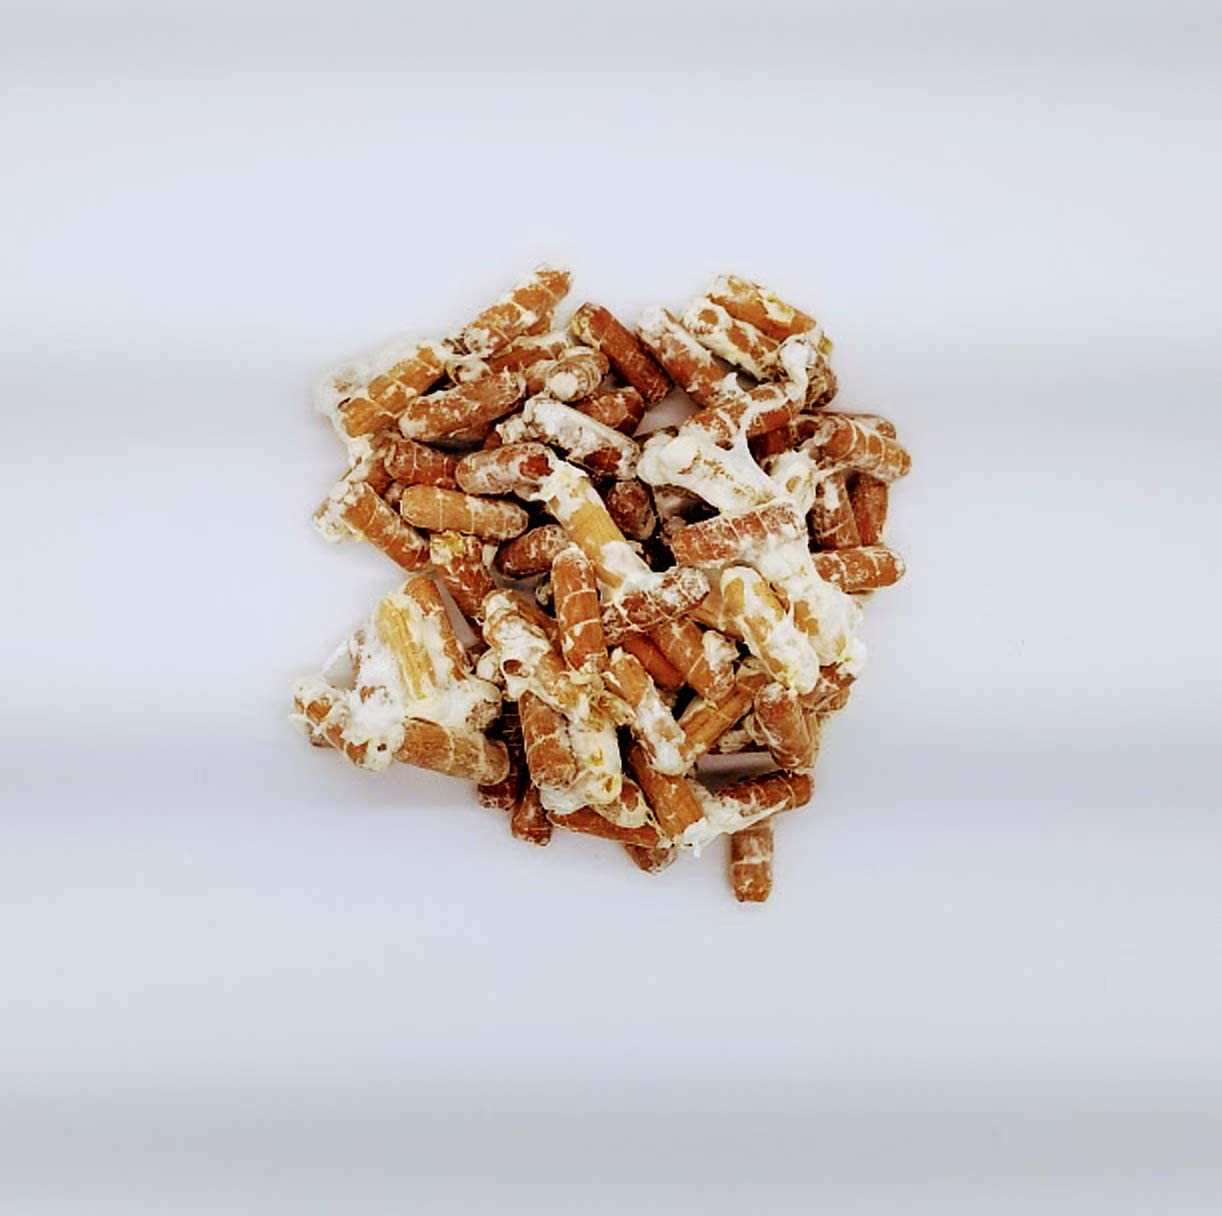 G1 or G2 Spawn Use to Grow on Straw or Sawdust Blocks 100 Lions Mane Mushroom Spawn Plugs to Grow Gourmet and Medicinal Mushrooms at Home or commercially